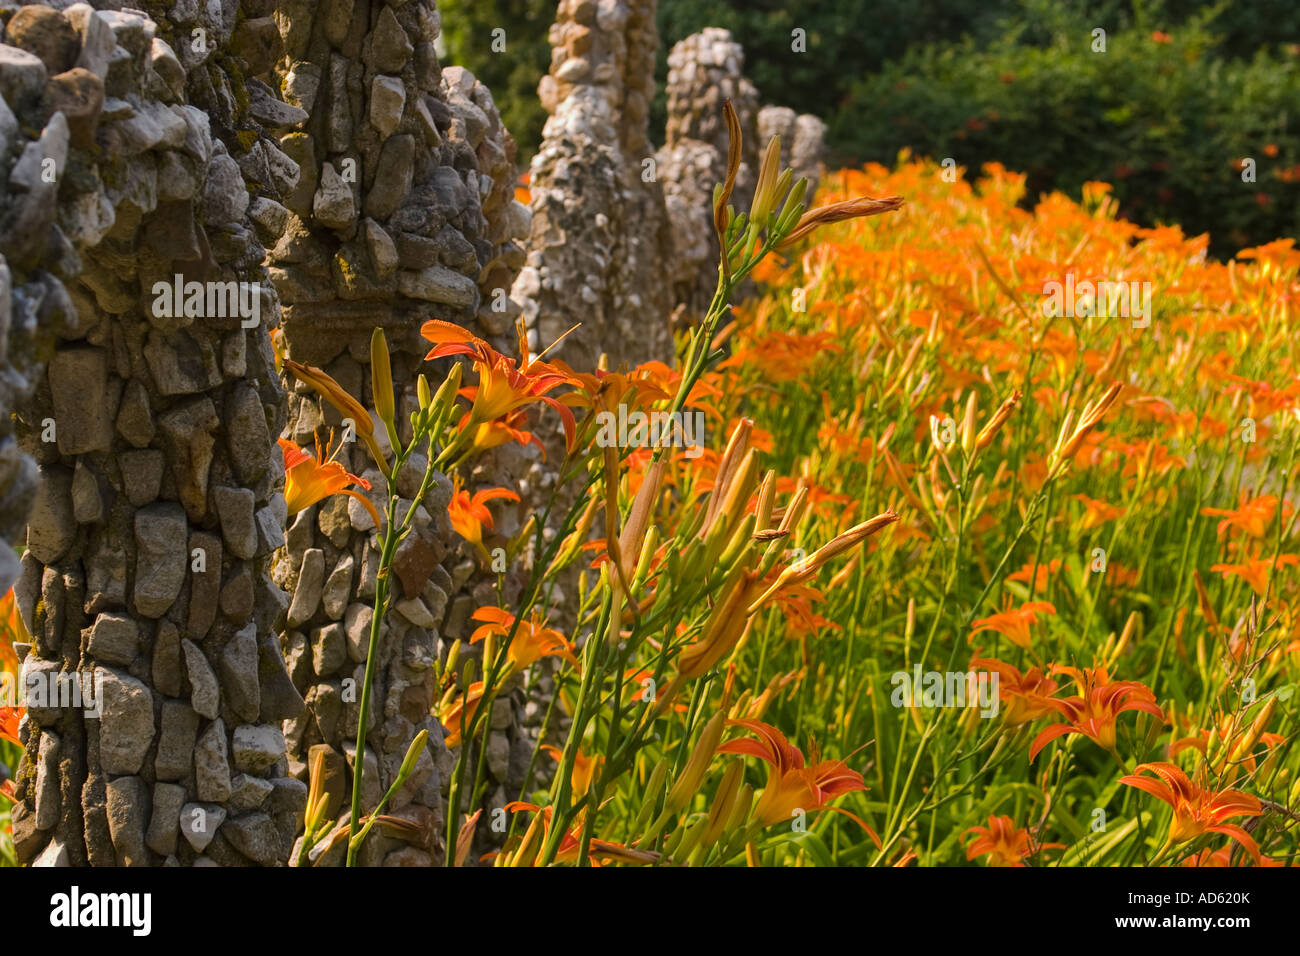 ILLINOIS Arcola Rock Structures And Flowers At Rockome Gardens Orange Day  Lilies Blooming